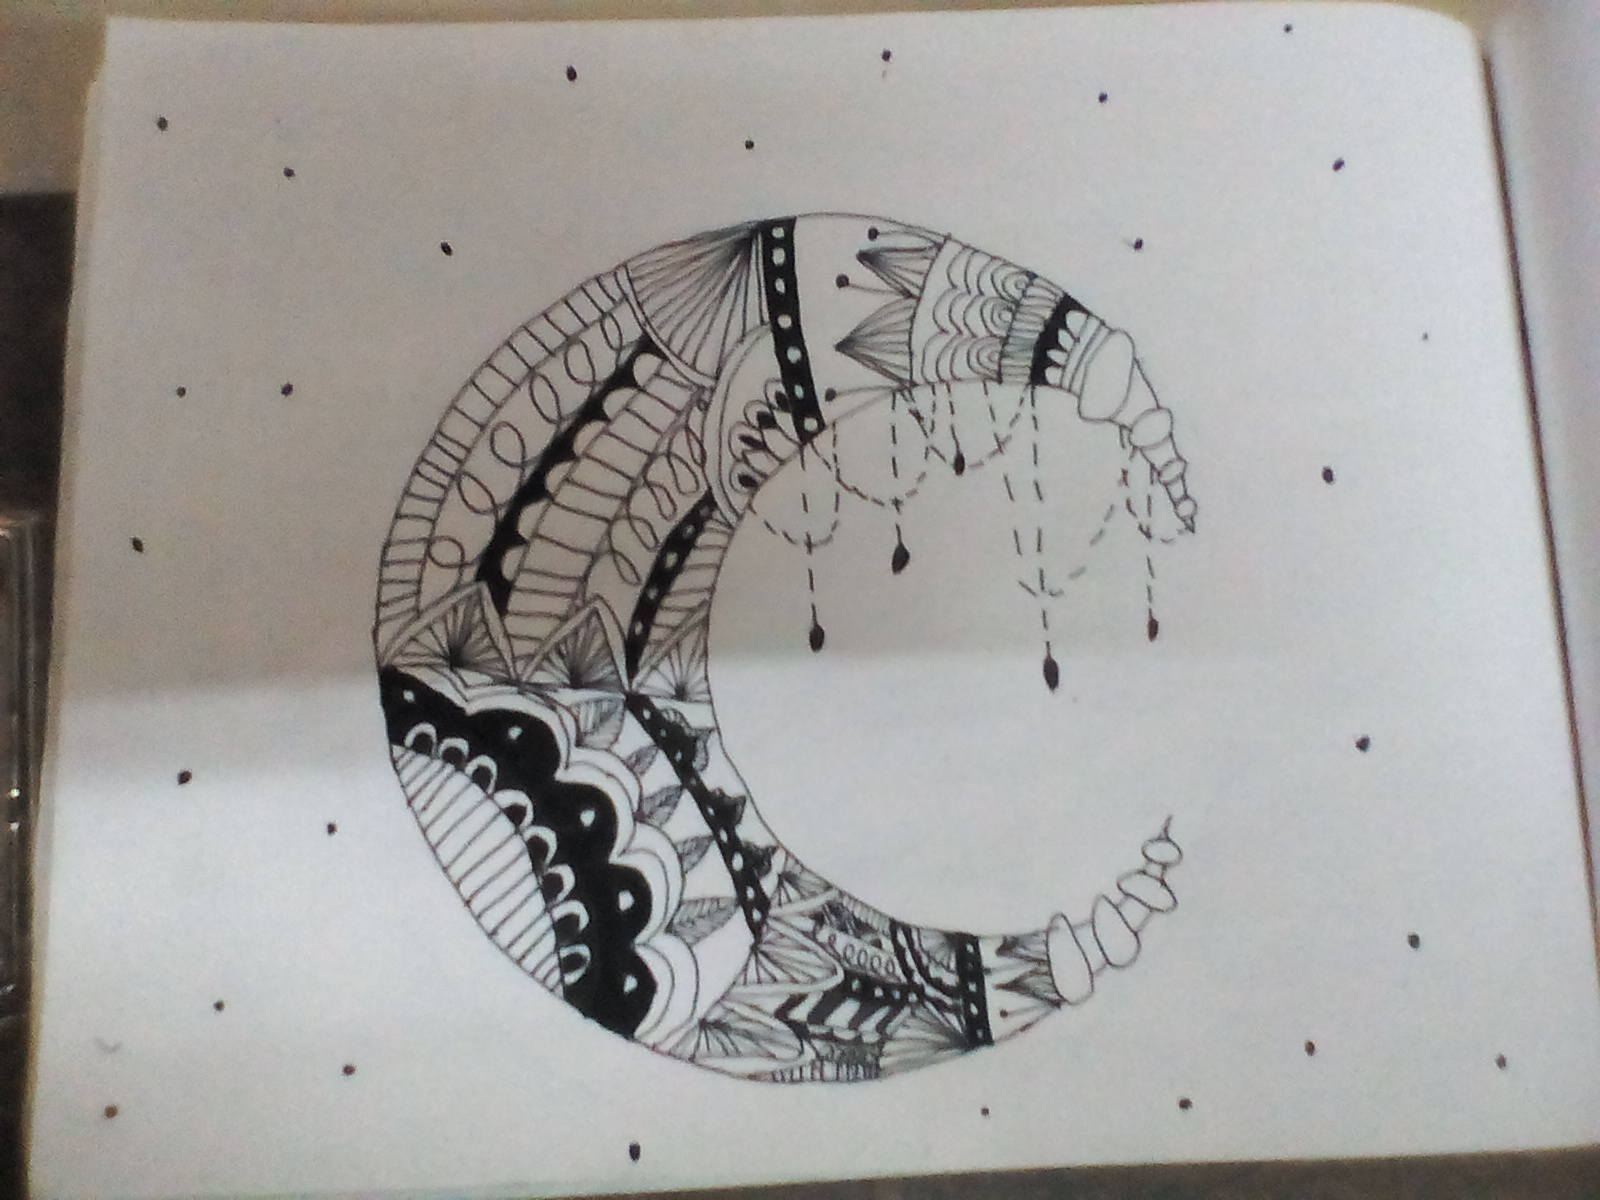 Ananya's Sketch 'The Moon Beauty'